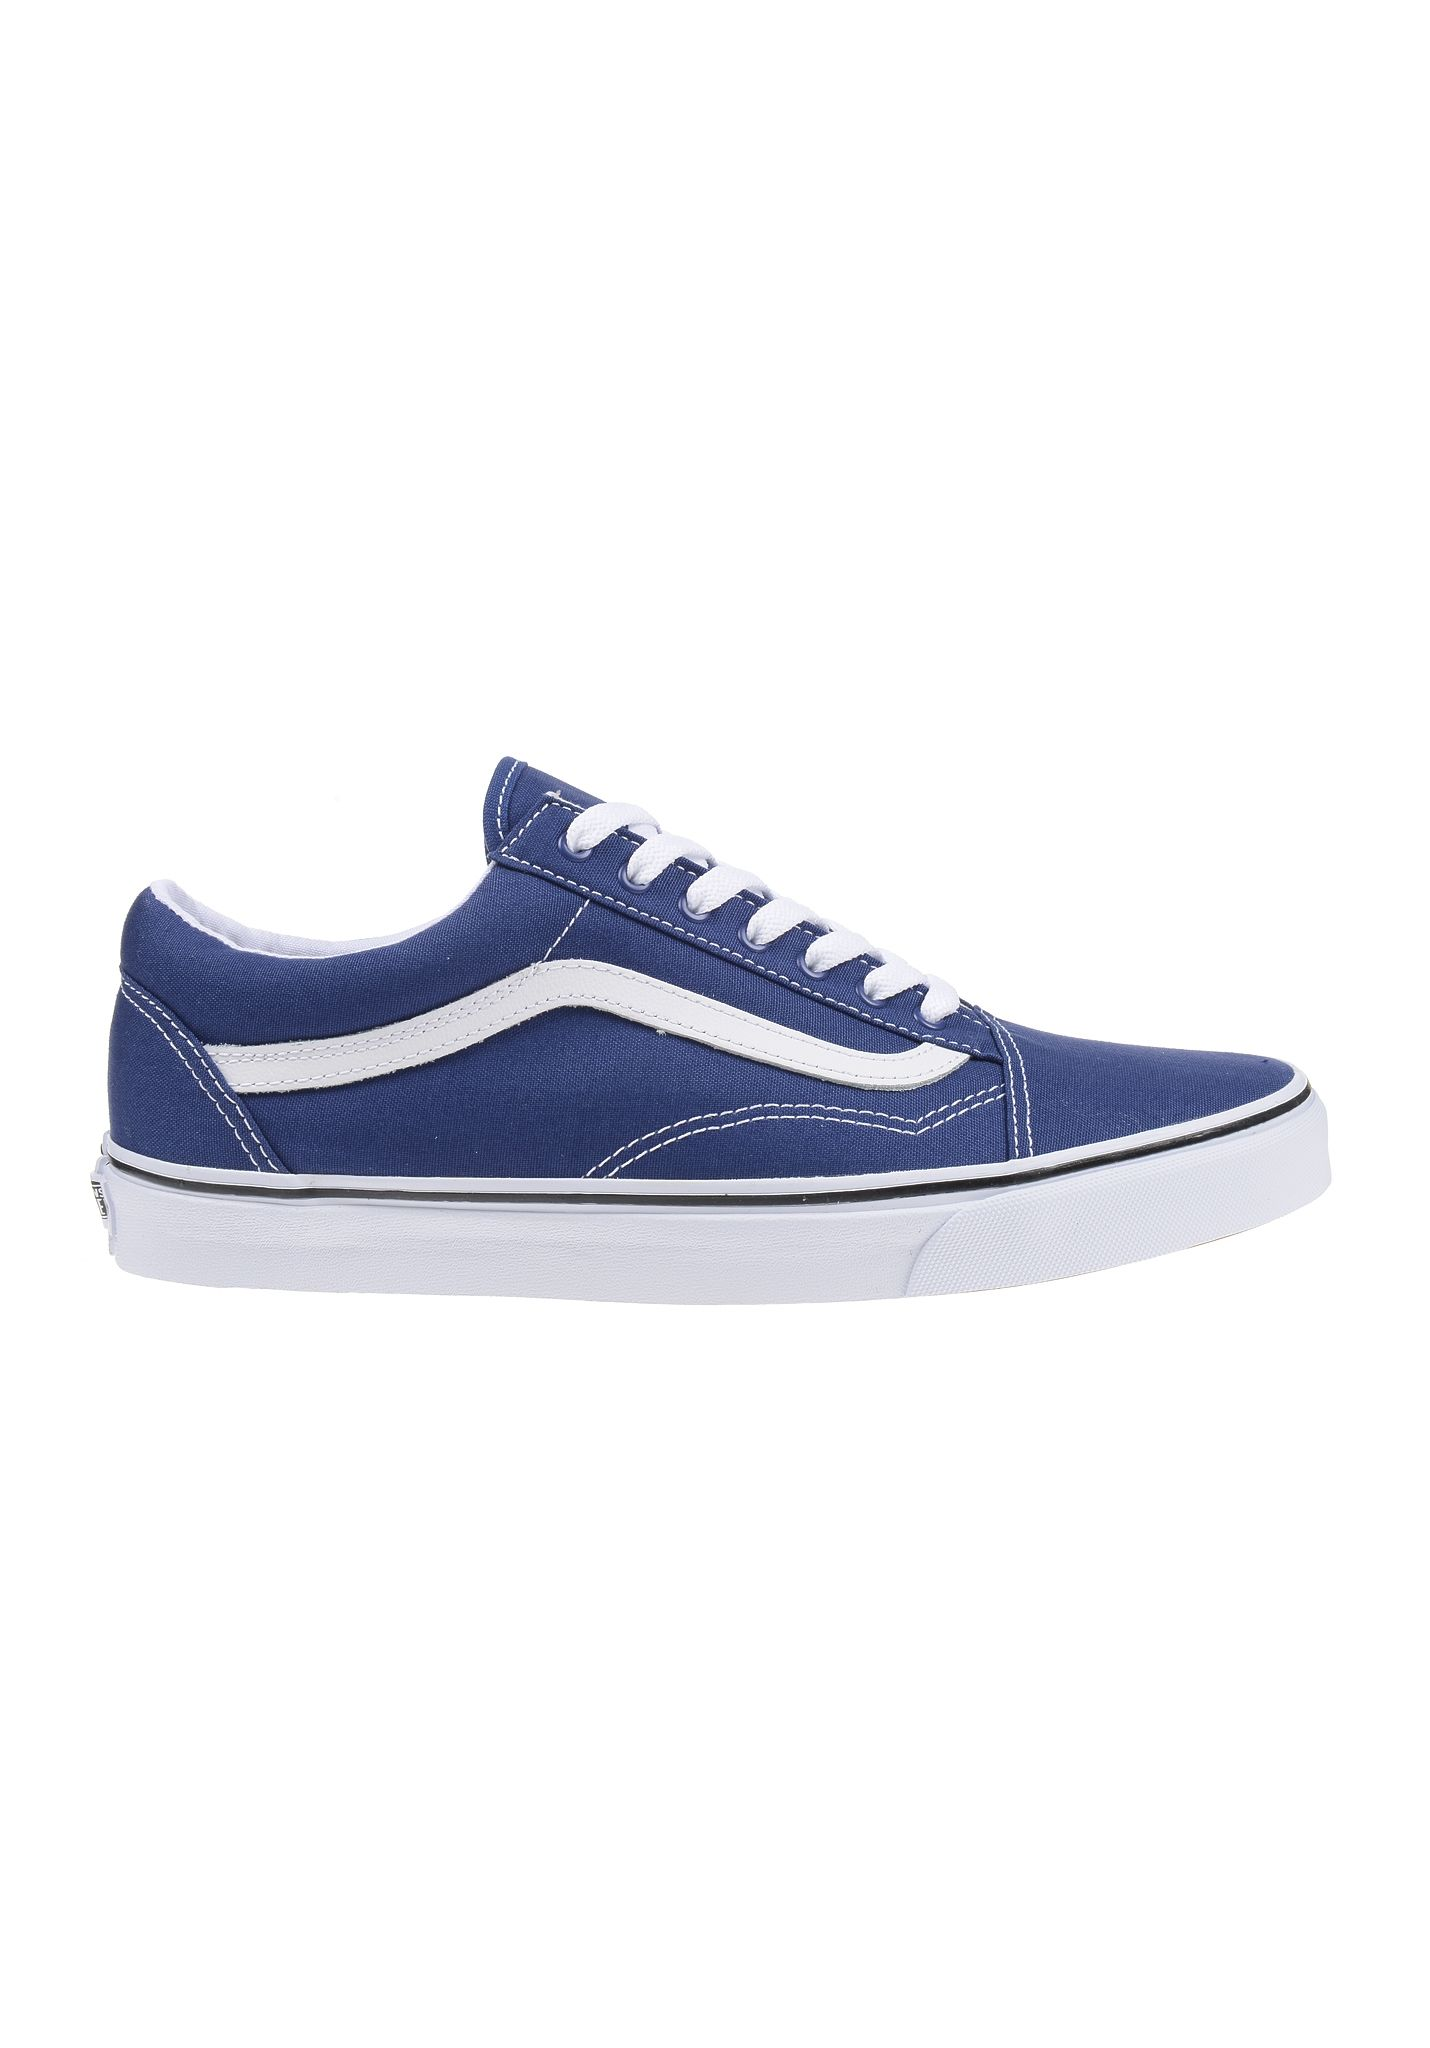 vans old skool damen blau projekt. Black Bedroom Furniture Sets. Home Design Ideas